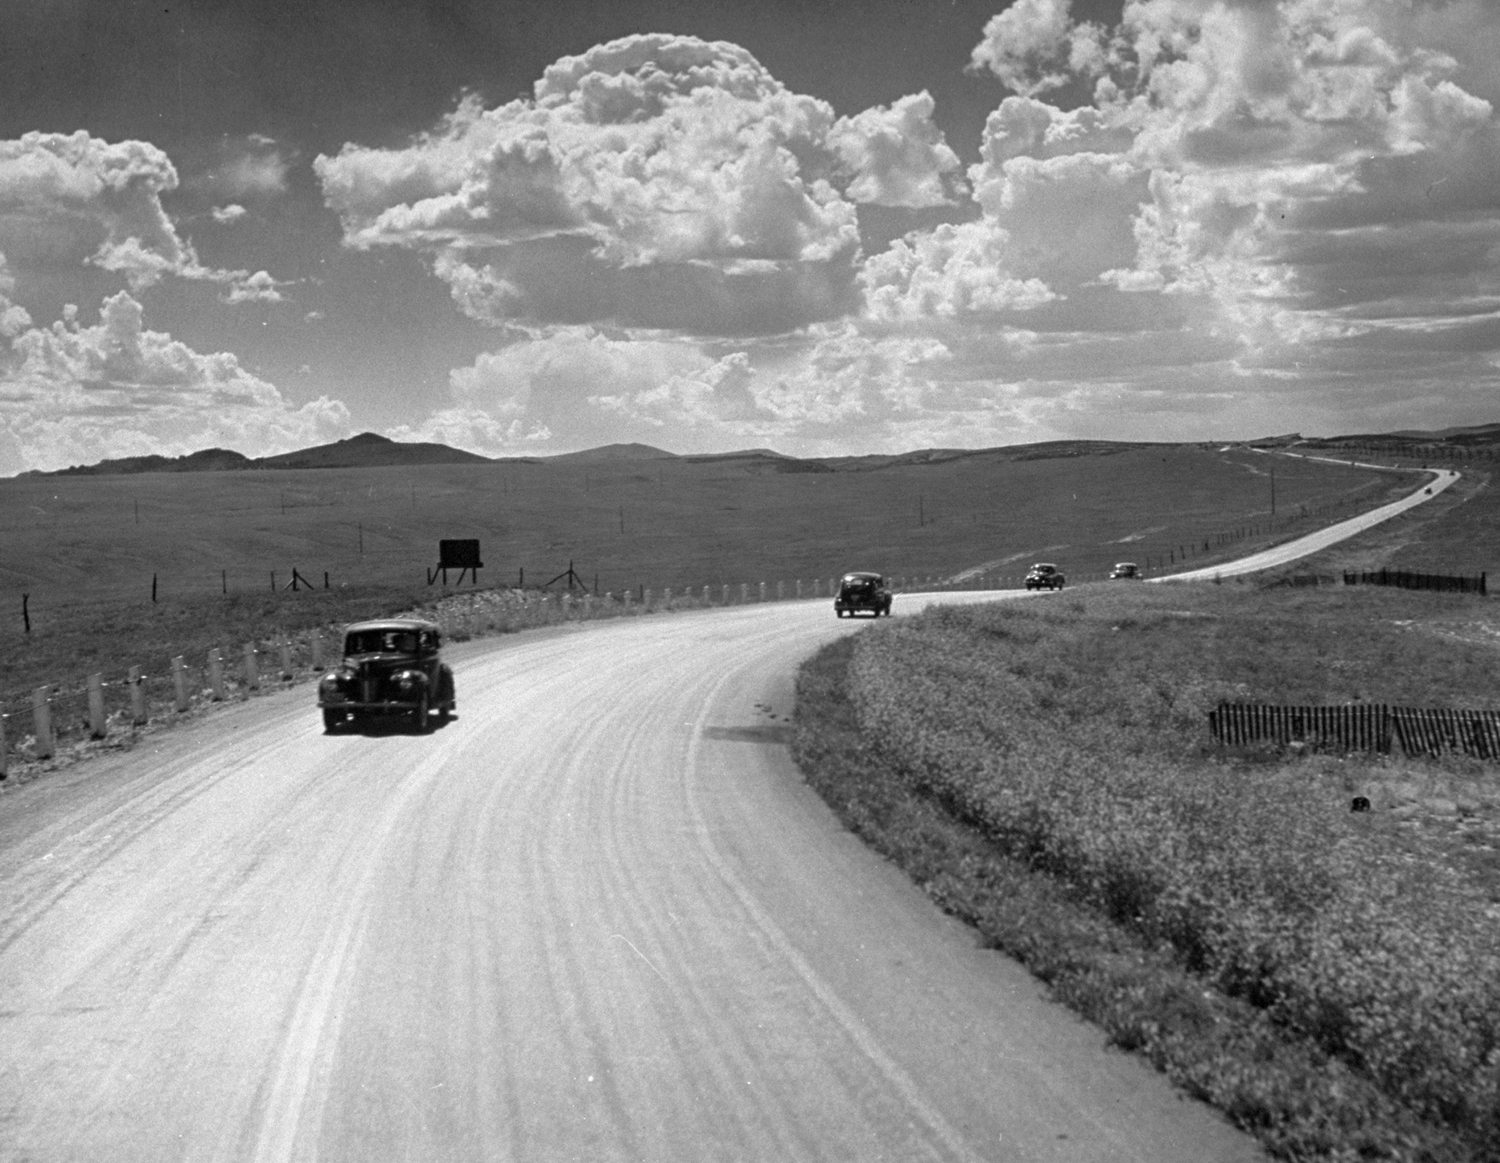 Route 30 Nebraska, USA, 1948.